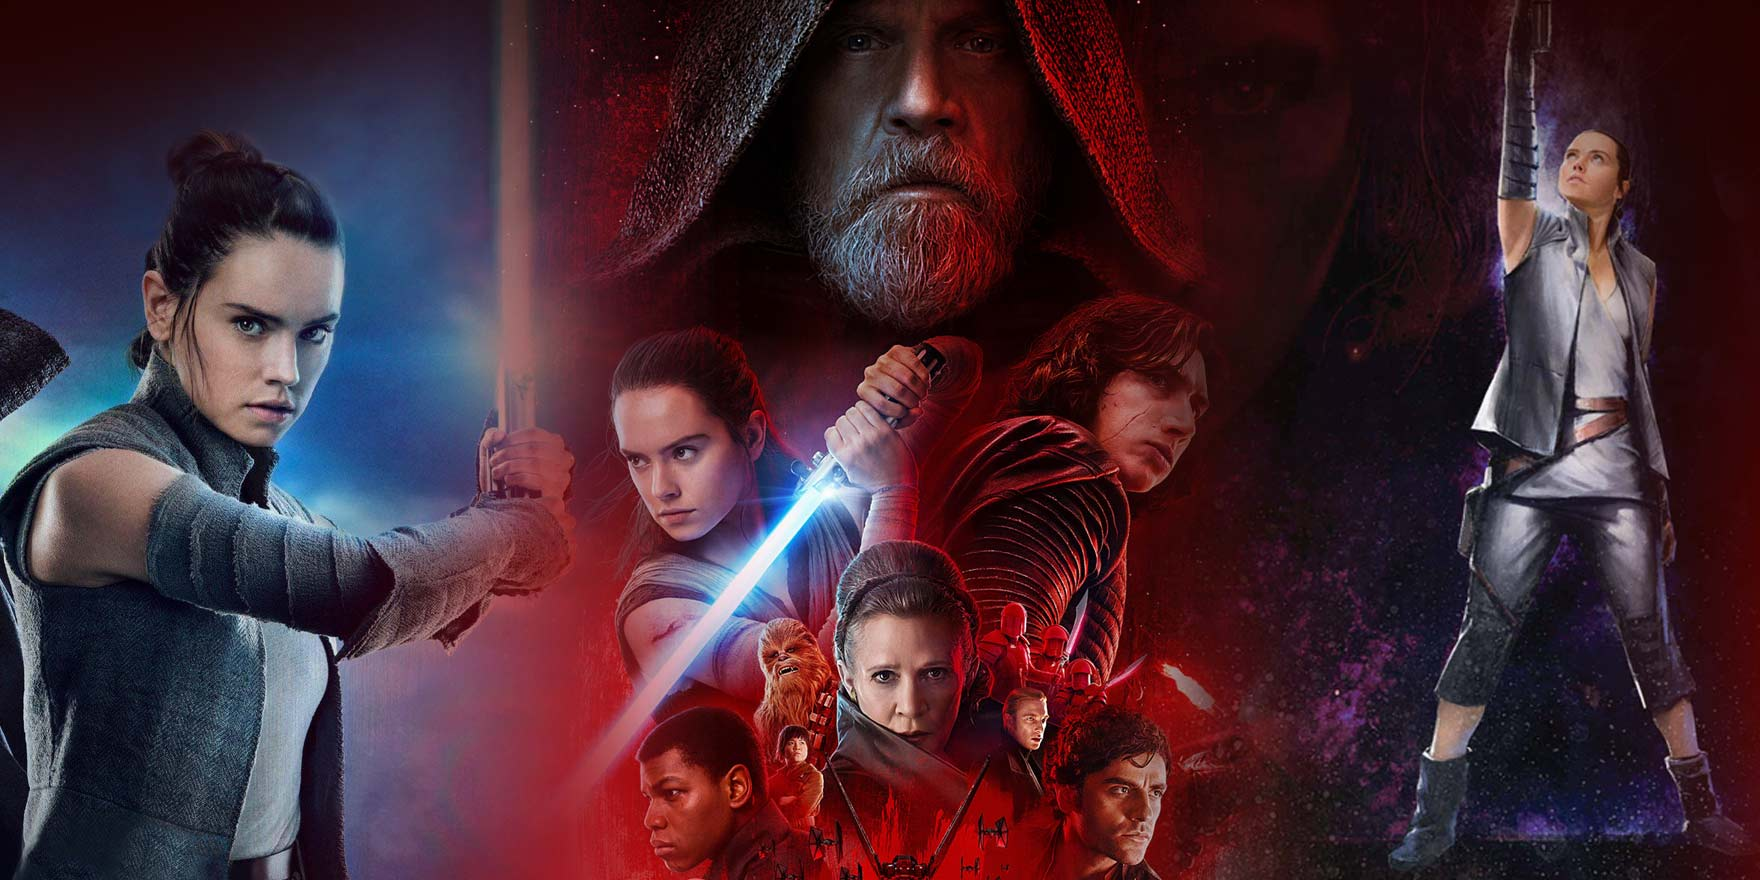 Star Wars: The Last Jedi - Header Image